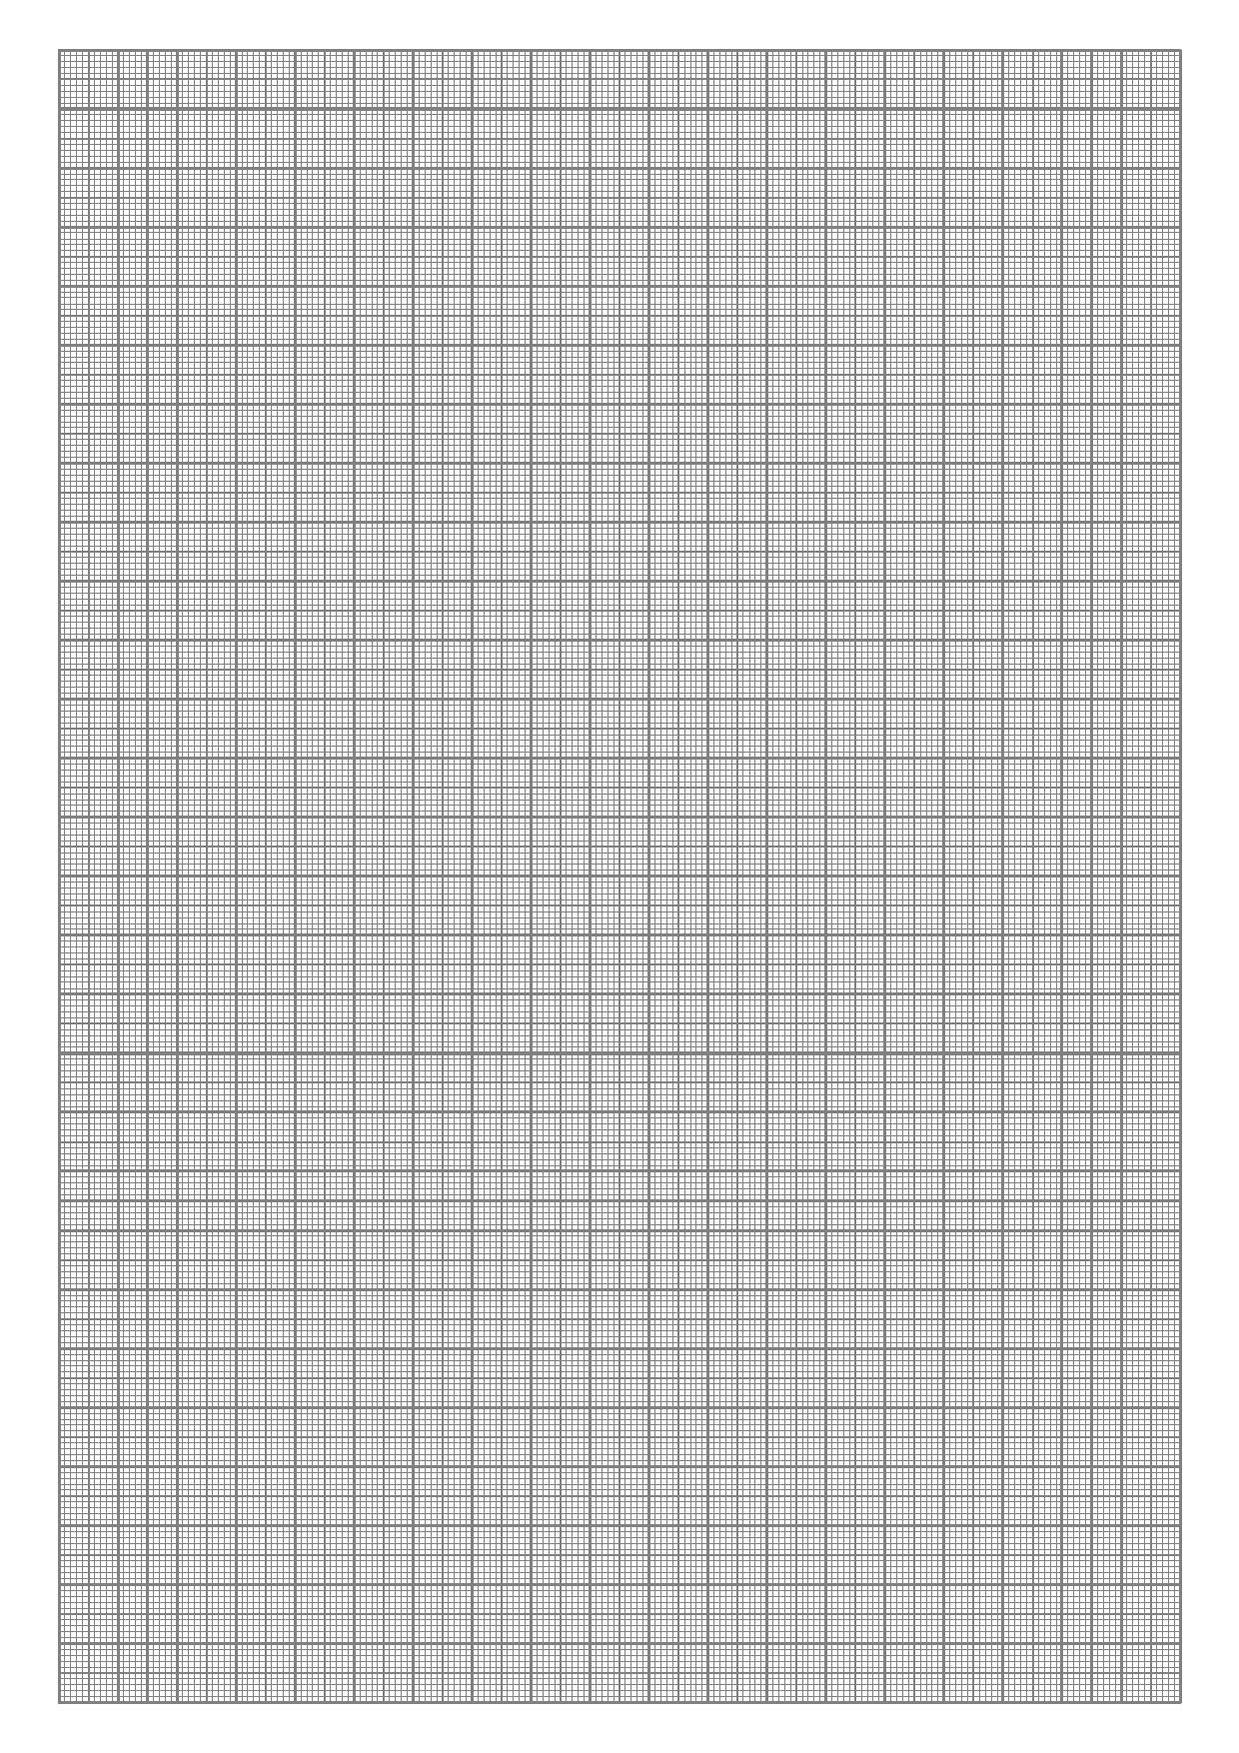 1 4 Inch Graph Paper